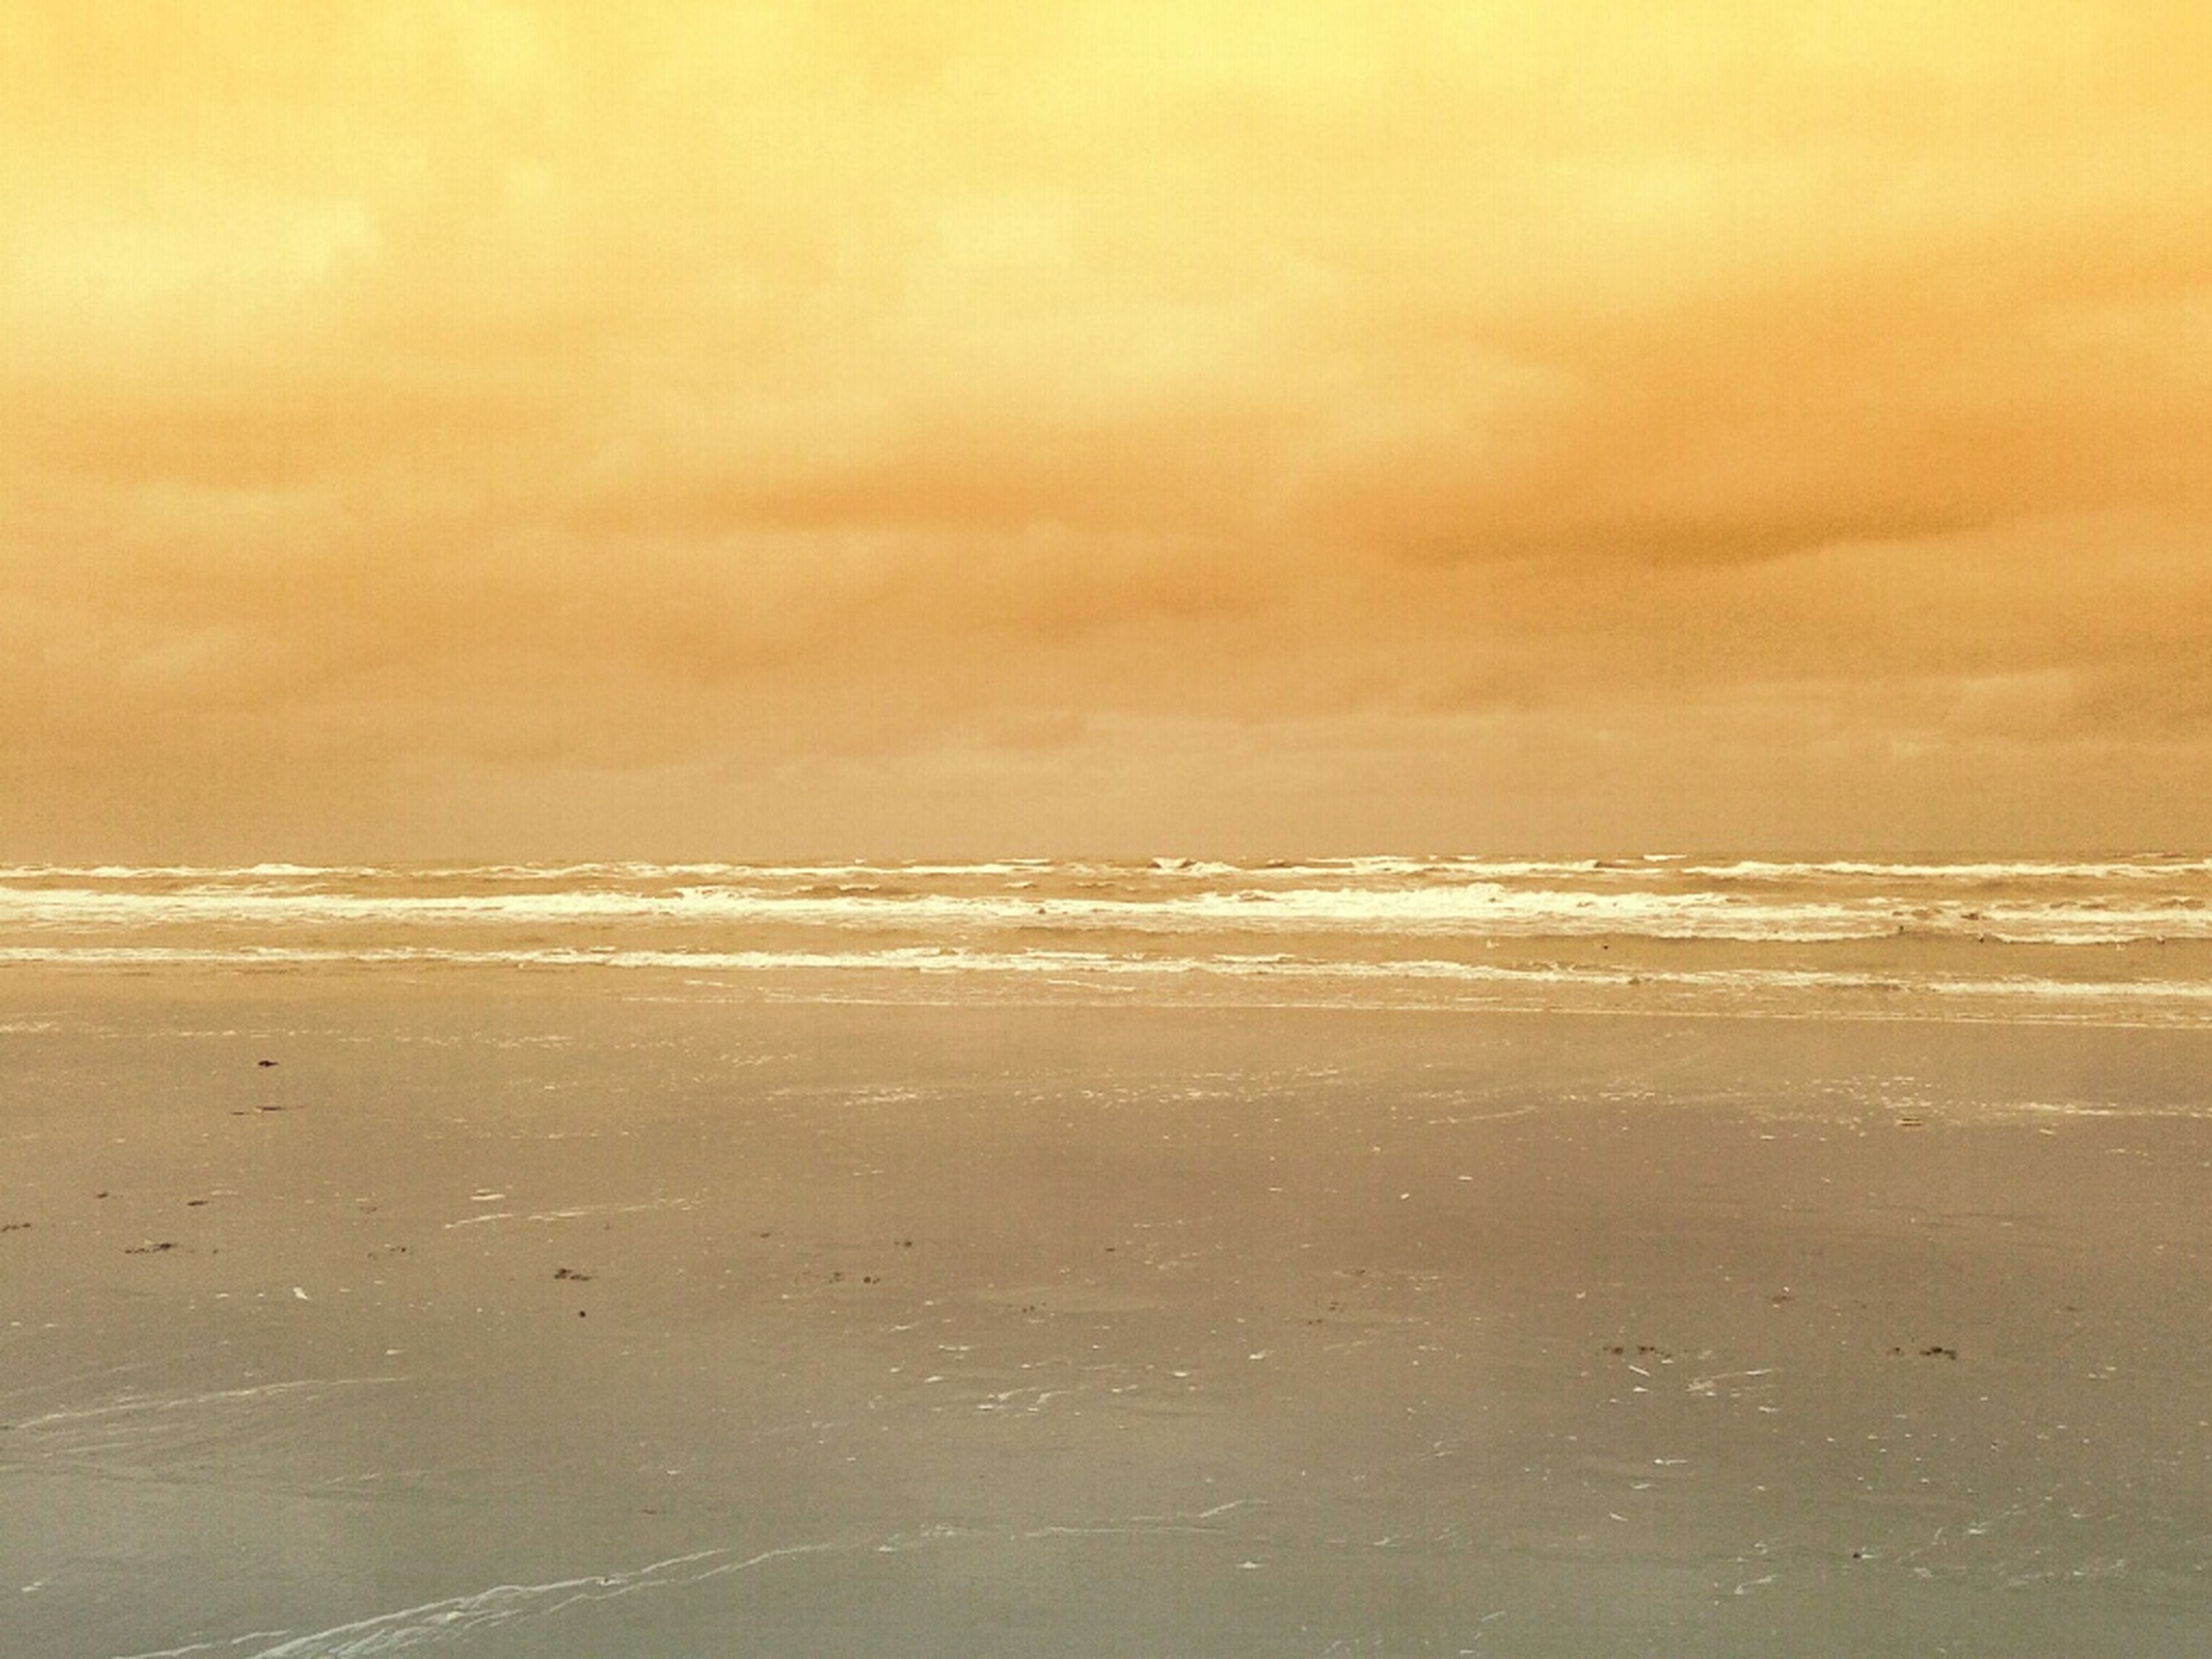 beach, sea, horizon over water, sand, shore, scenics, tranquil scene, tranquility, water, beauty in nature, sky, nature, wave, idyllic, sunset, cloud - sky, coastline, surf, remote, outdoors